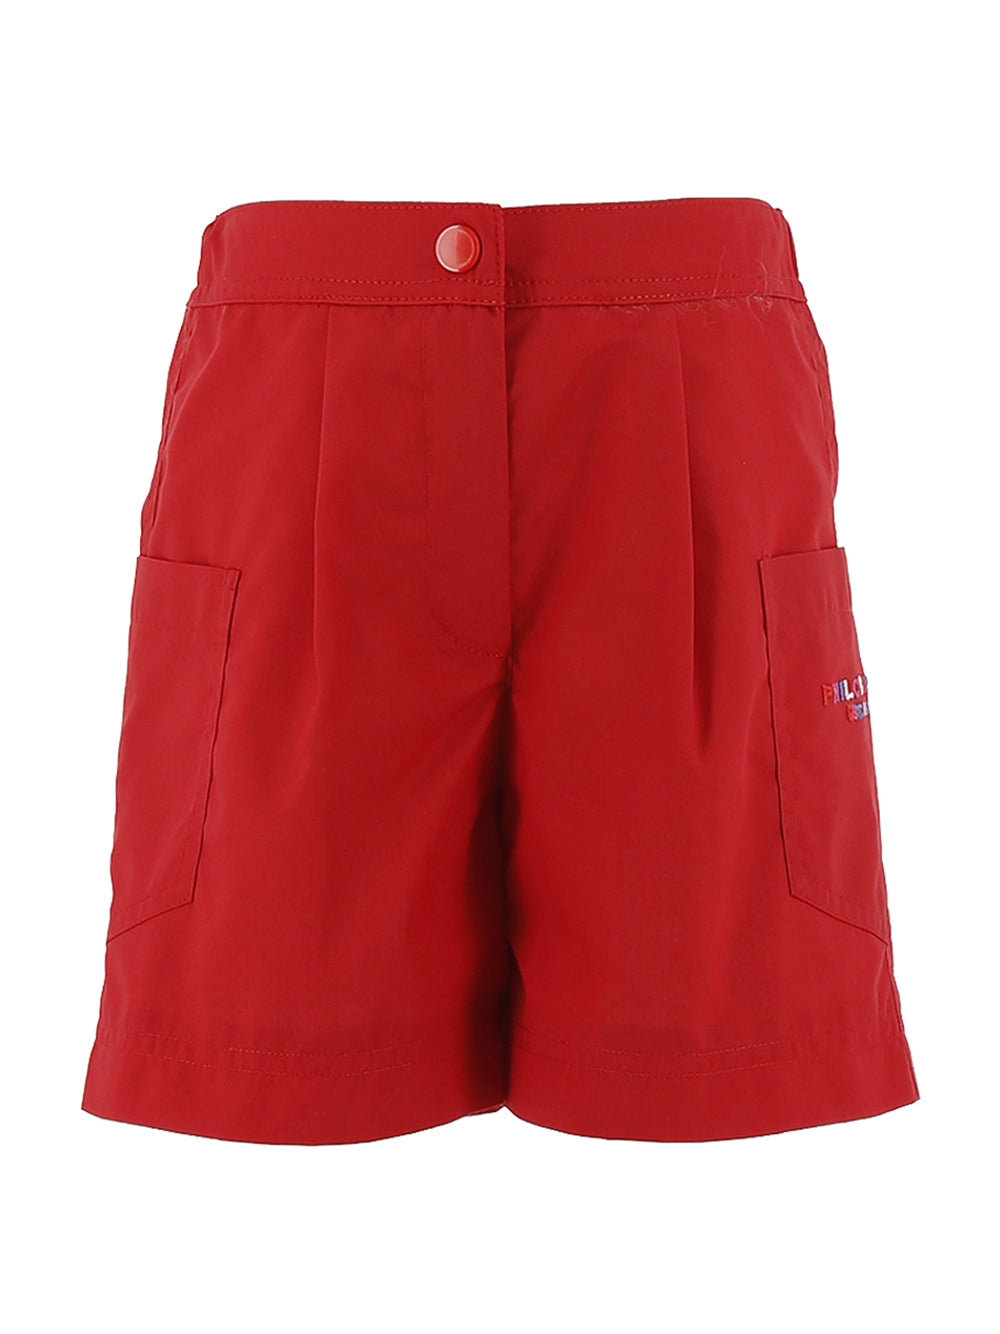 Red Pleated Philosophy Shorts